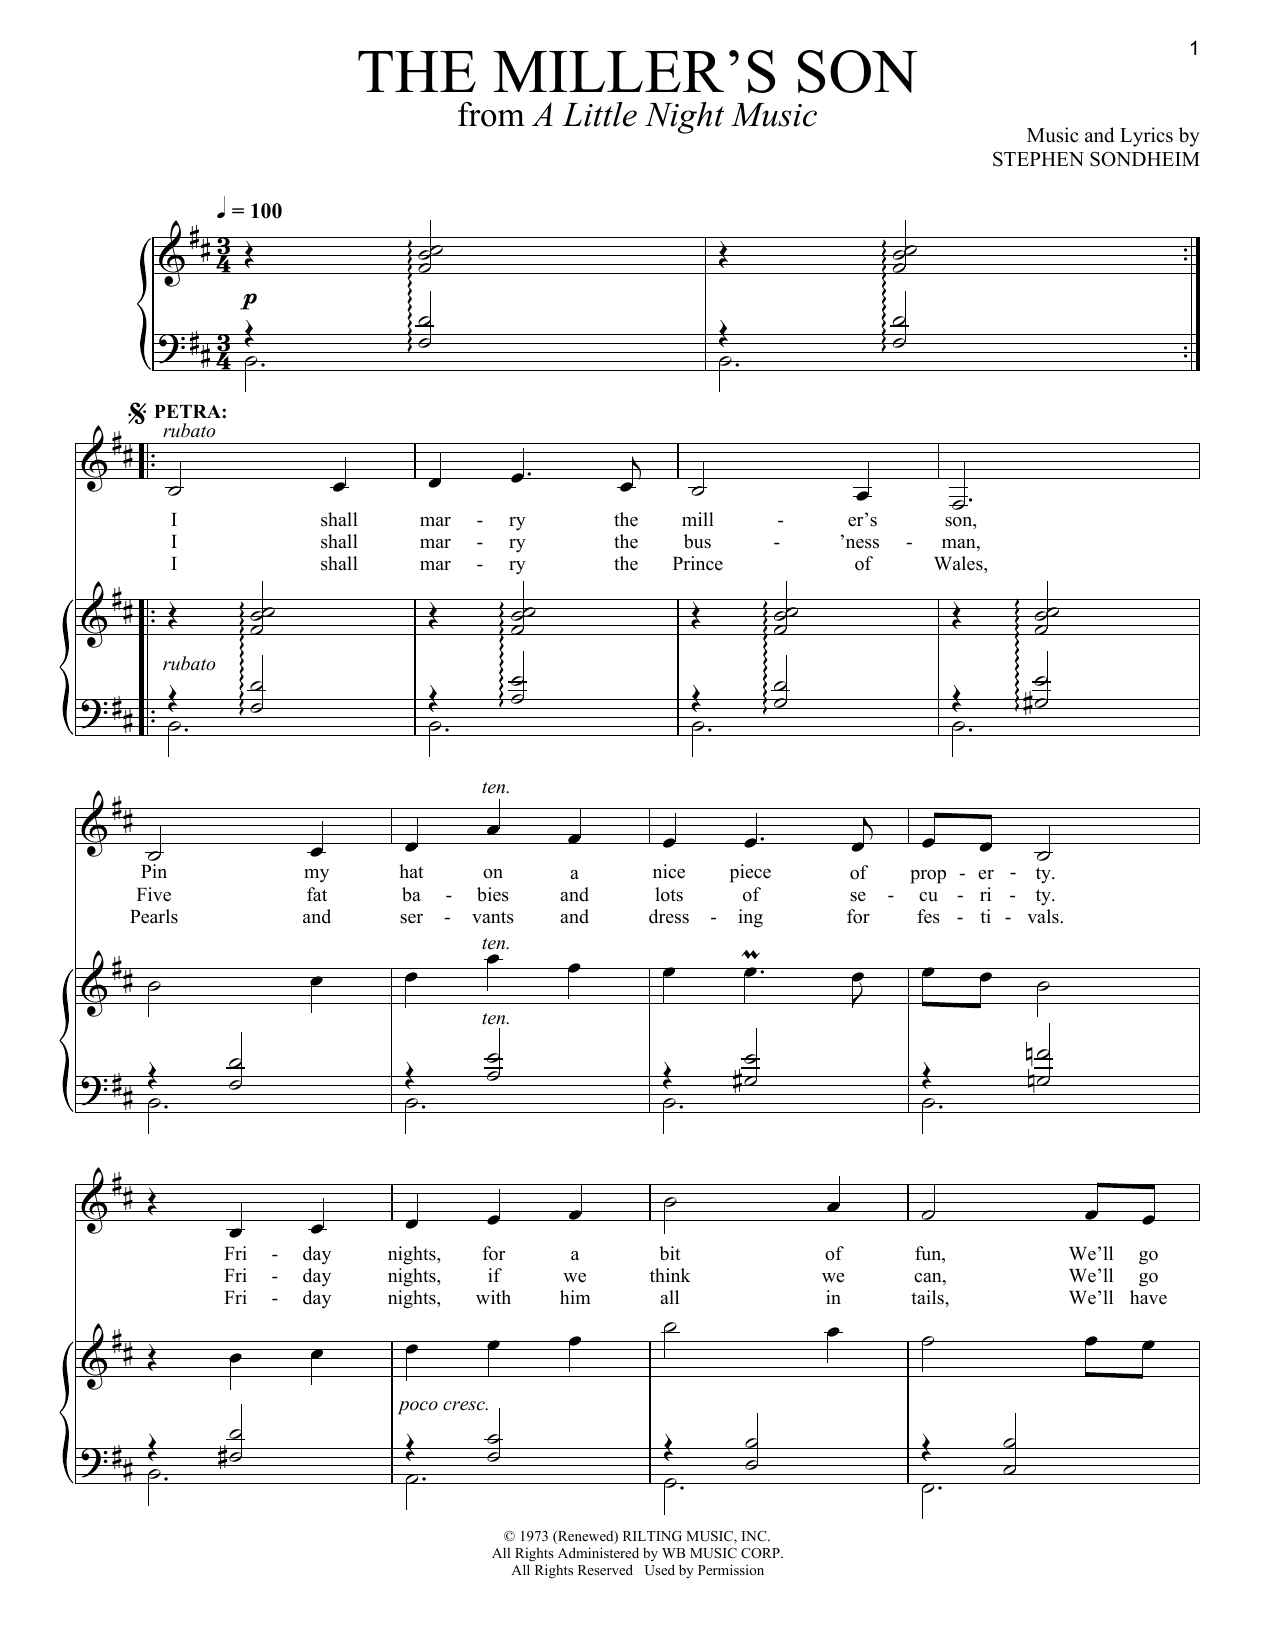 Stephen Sondheim The Miller's Son sheet music notes and chords. Download Printable PDF.